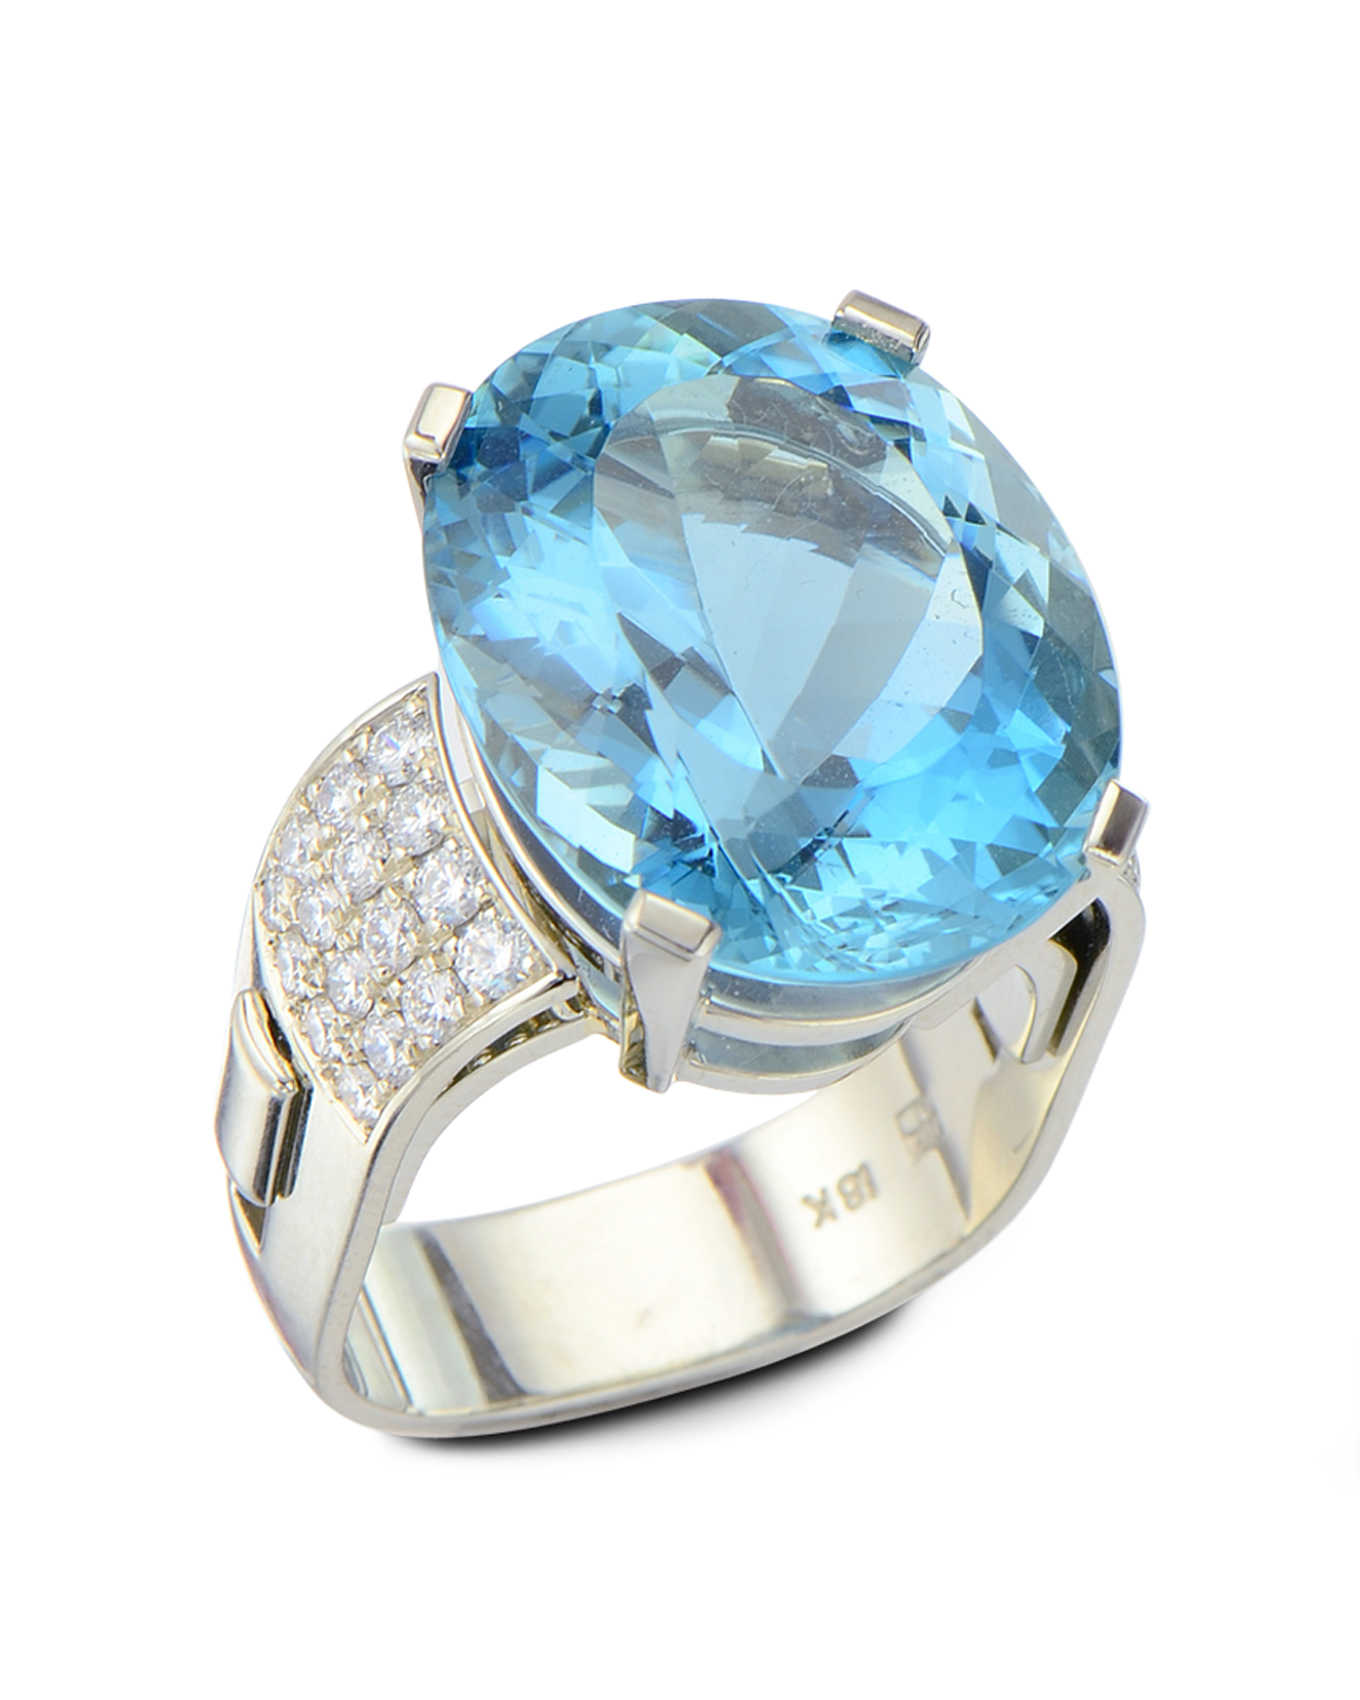 items product in aquamarine ring buy rings jewellery art deco platinum sold